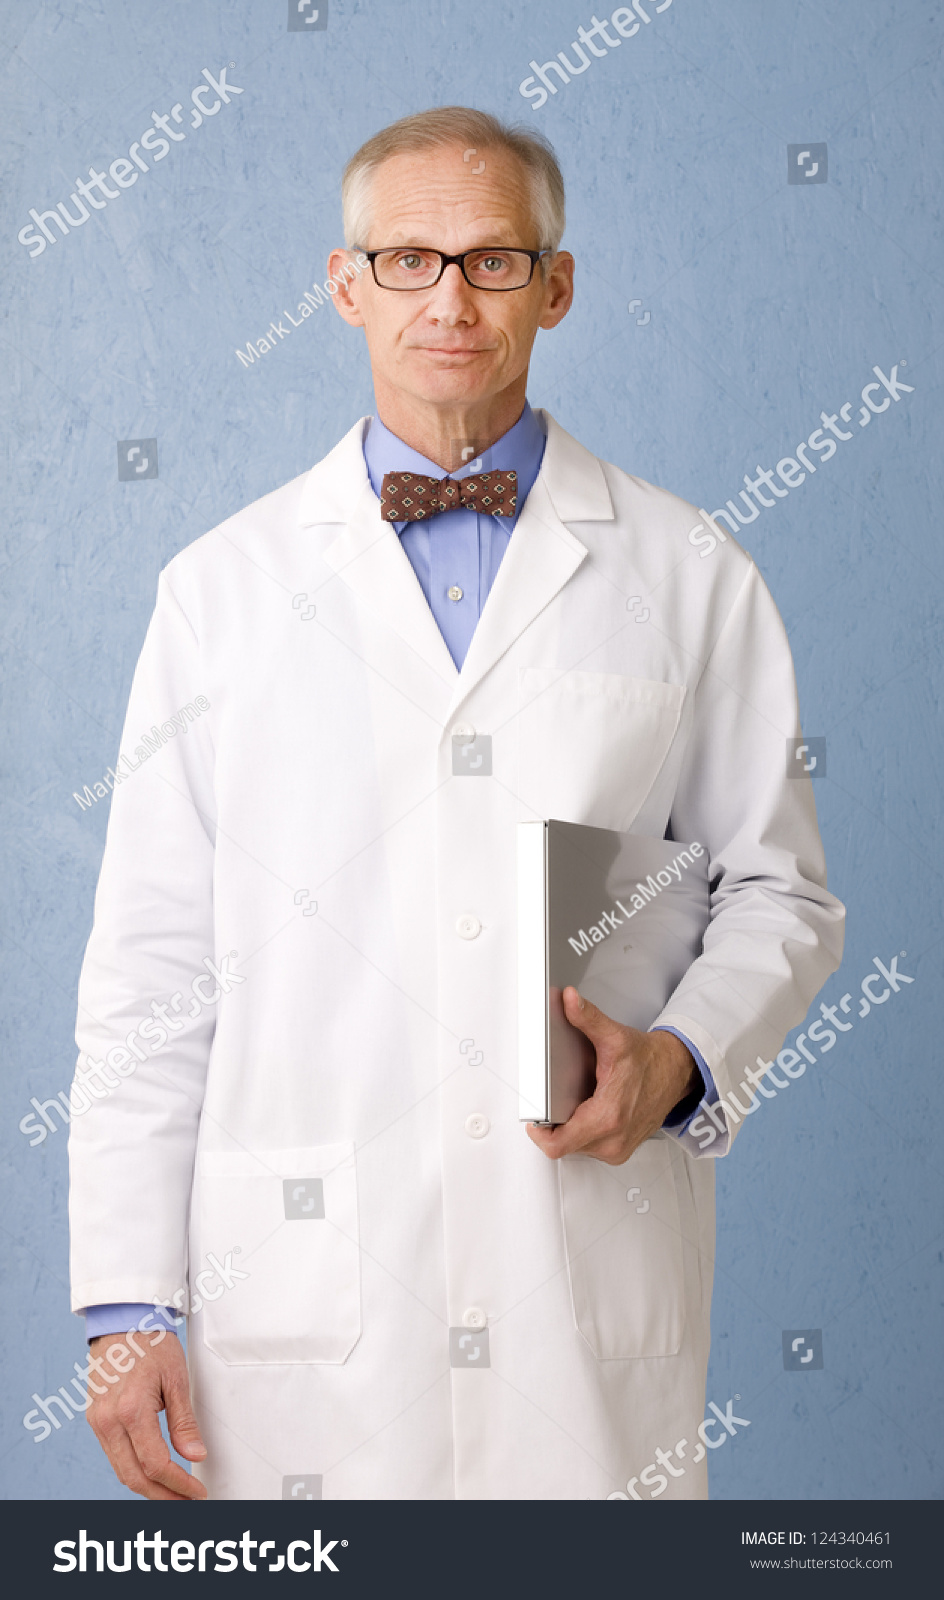 Health Care Professional Looking Camera Lab Stock Photo 124340461